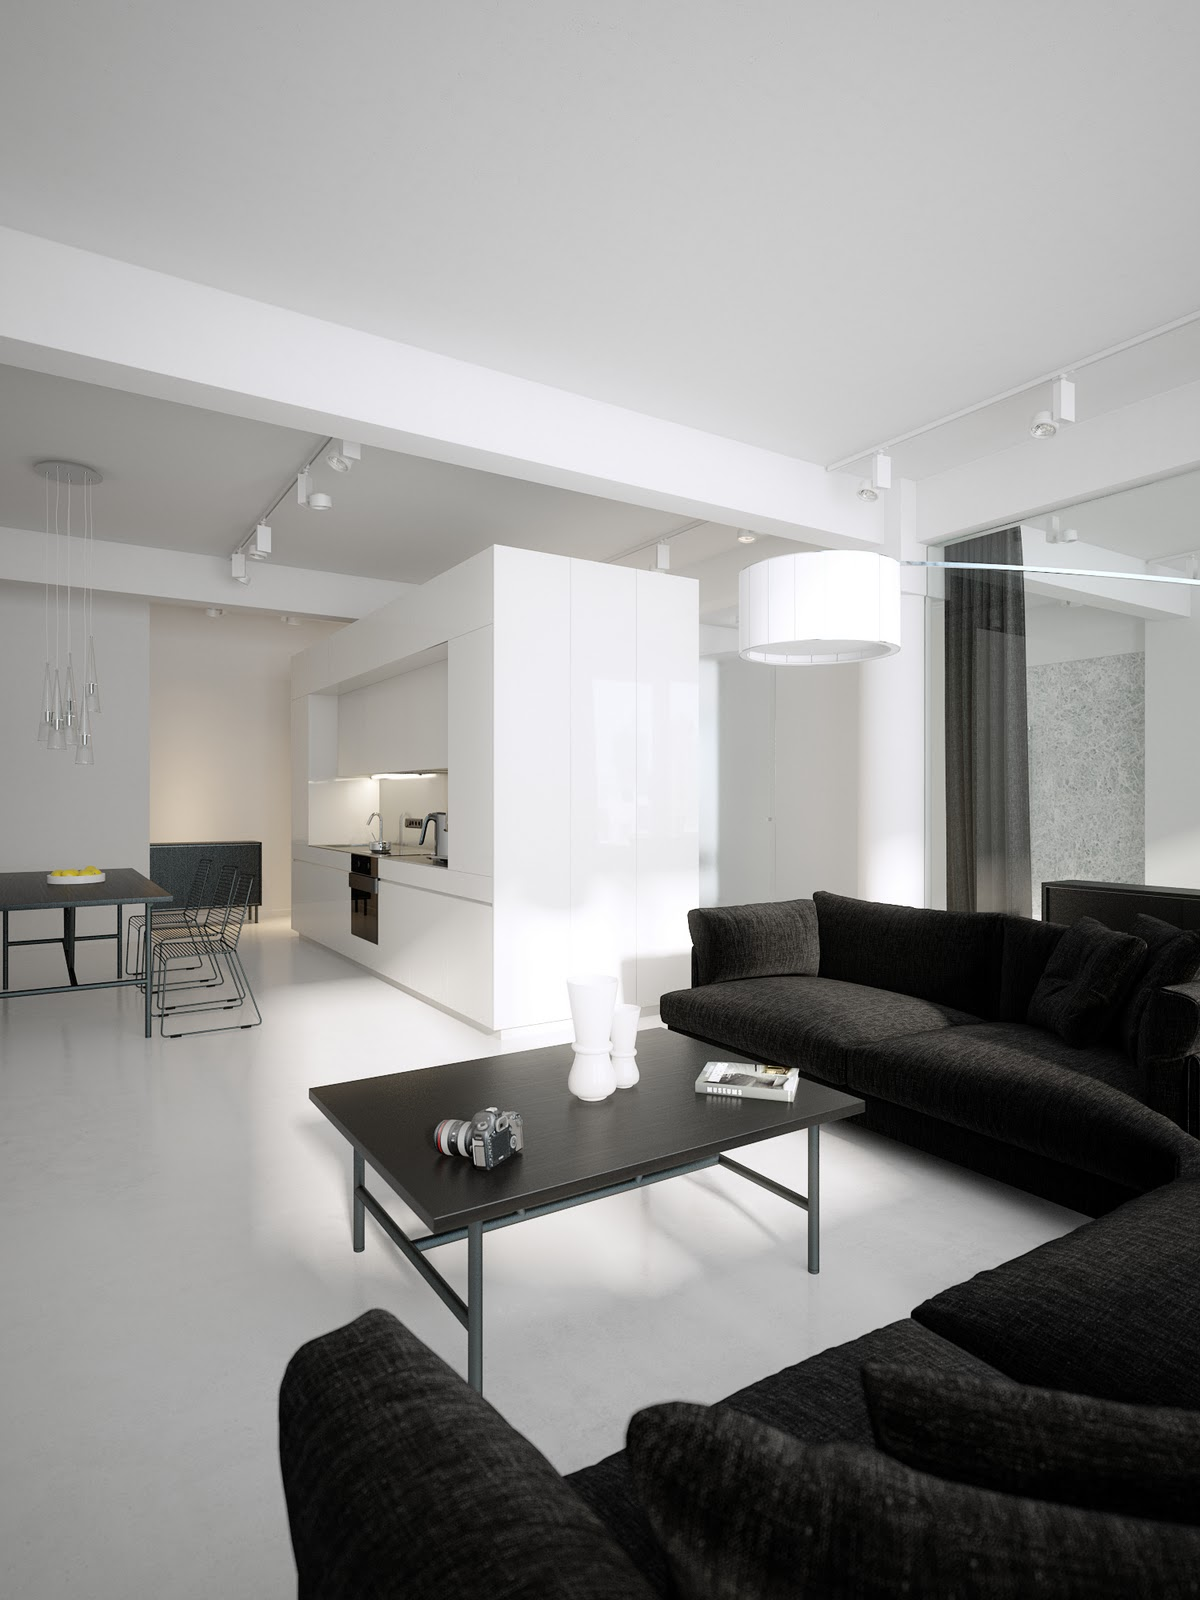 Luxury Minimalist Loft Designs in Black and White with Astonishing ...